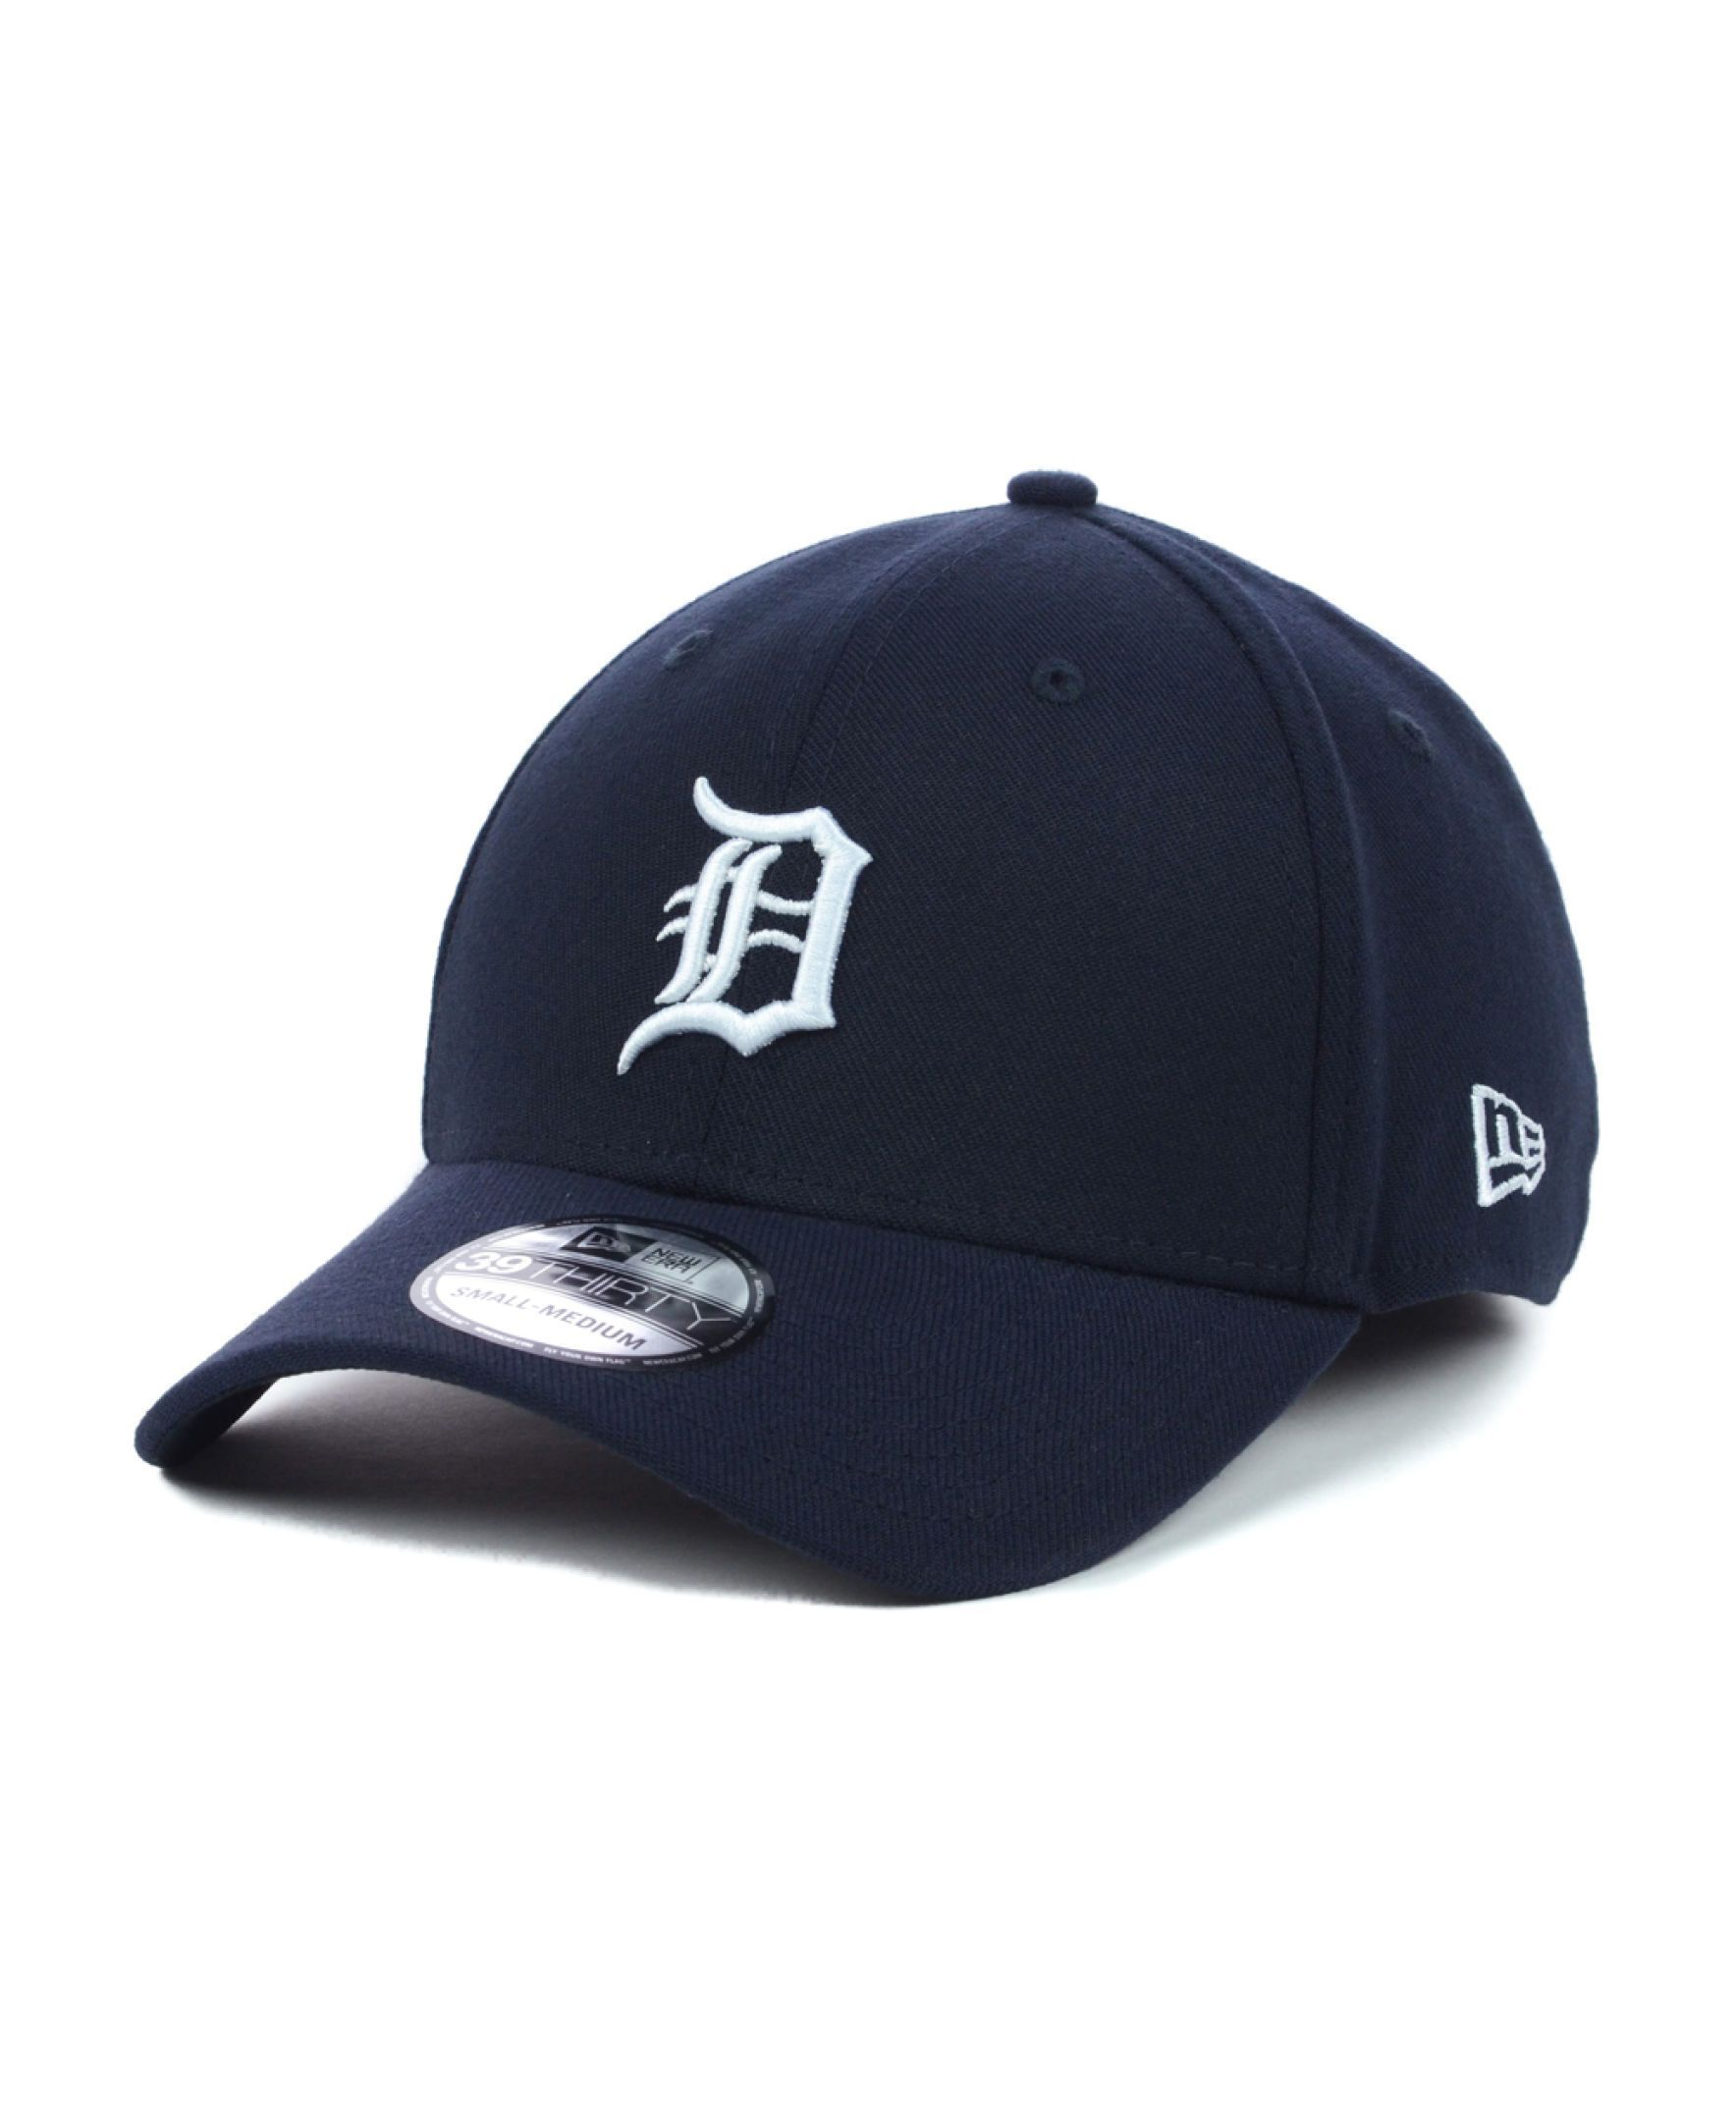 New Era Detroit Tigers Mlb Team Classic 39THIRTY Cap  bfbb8f5097da